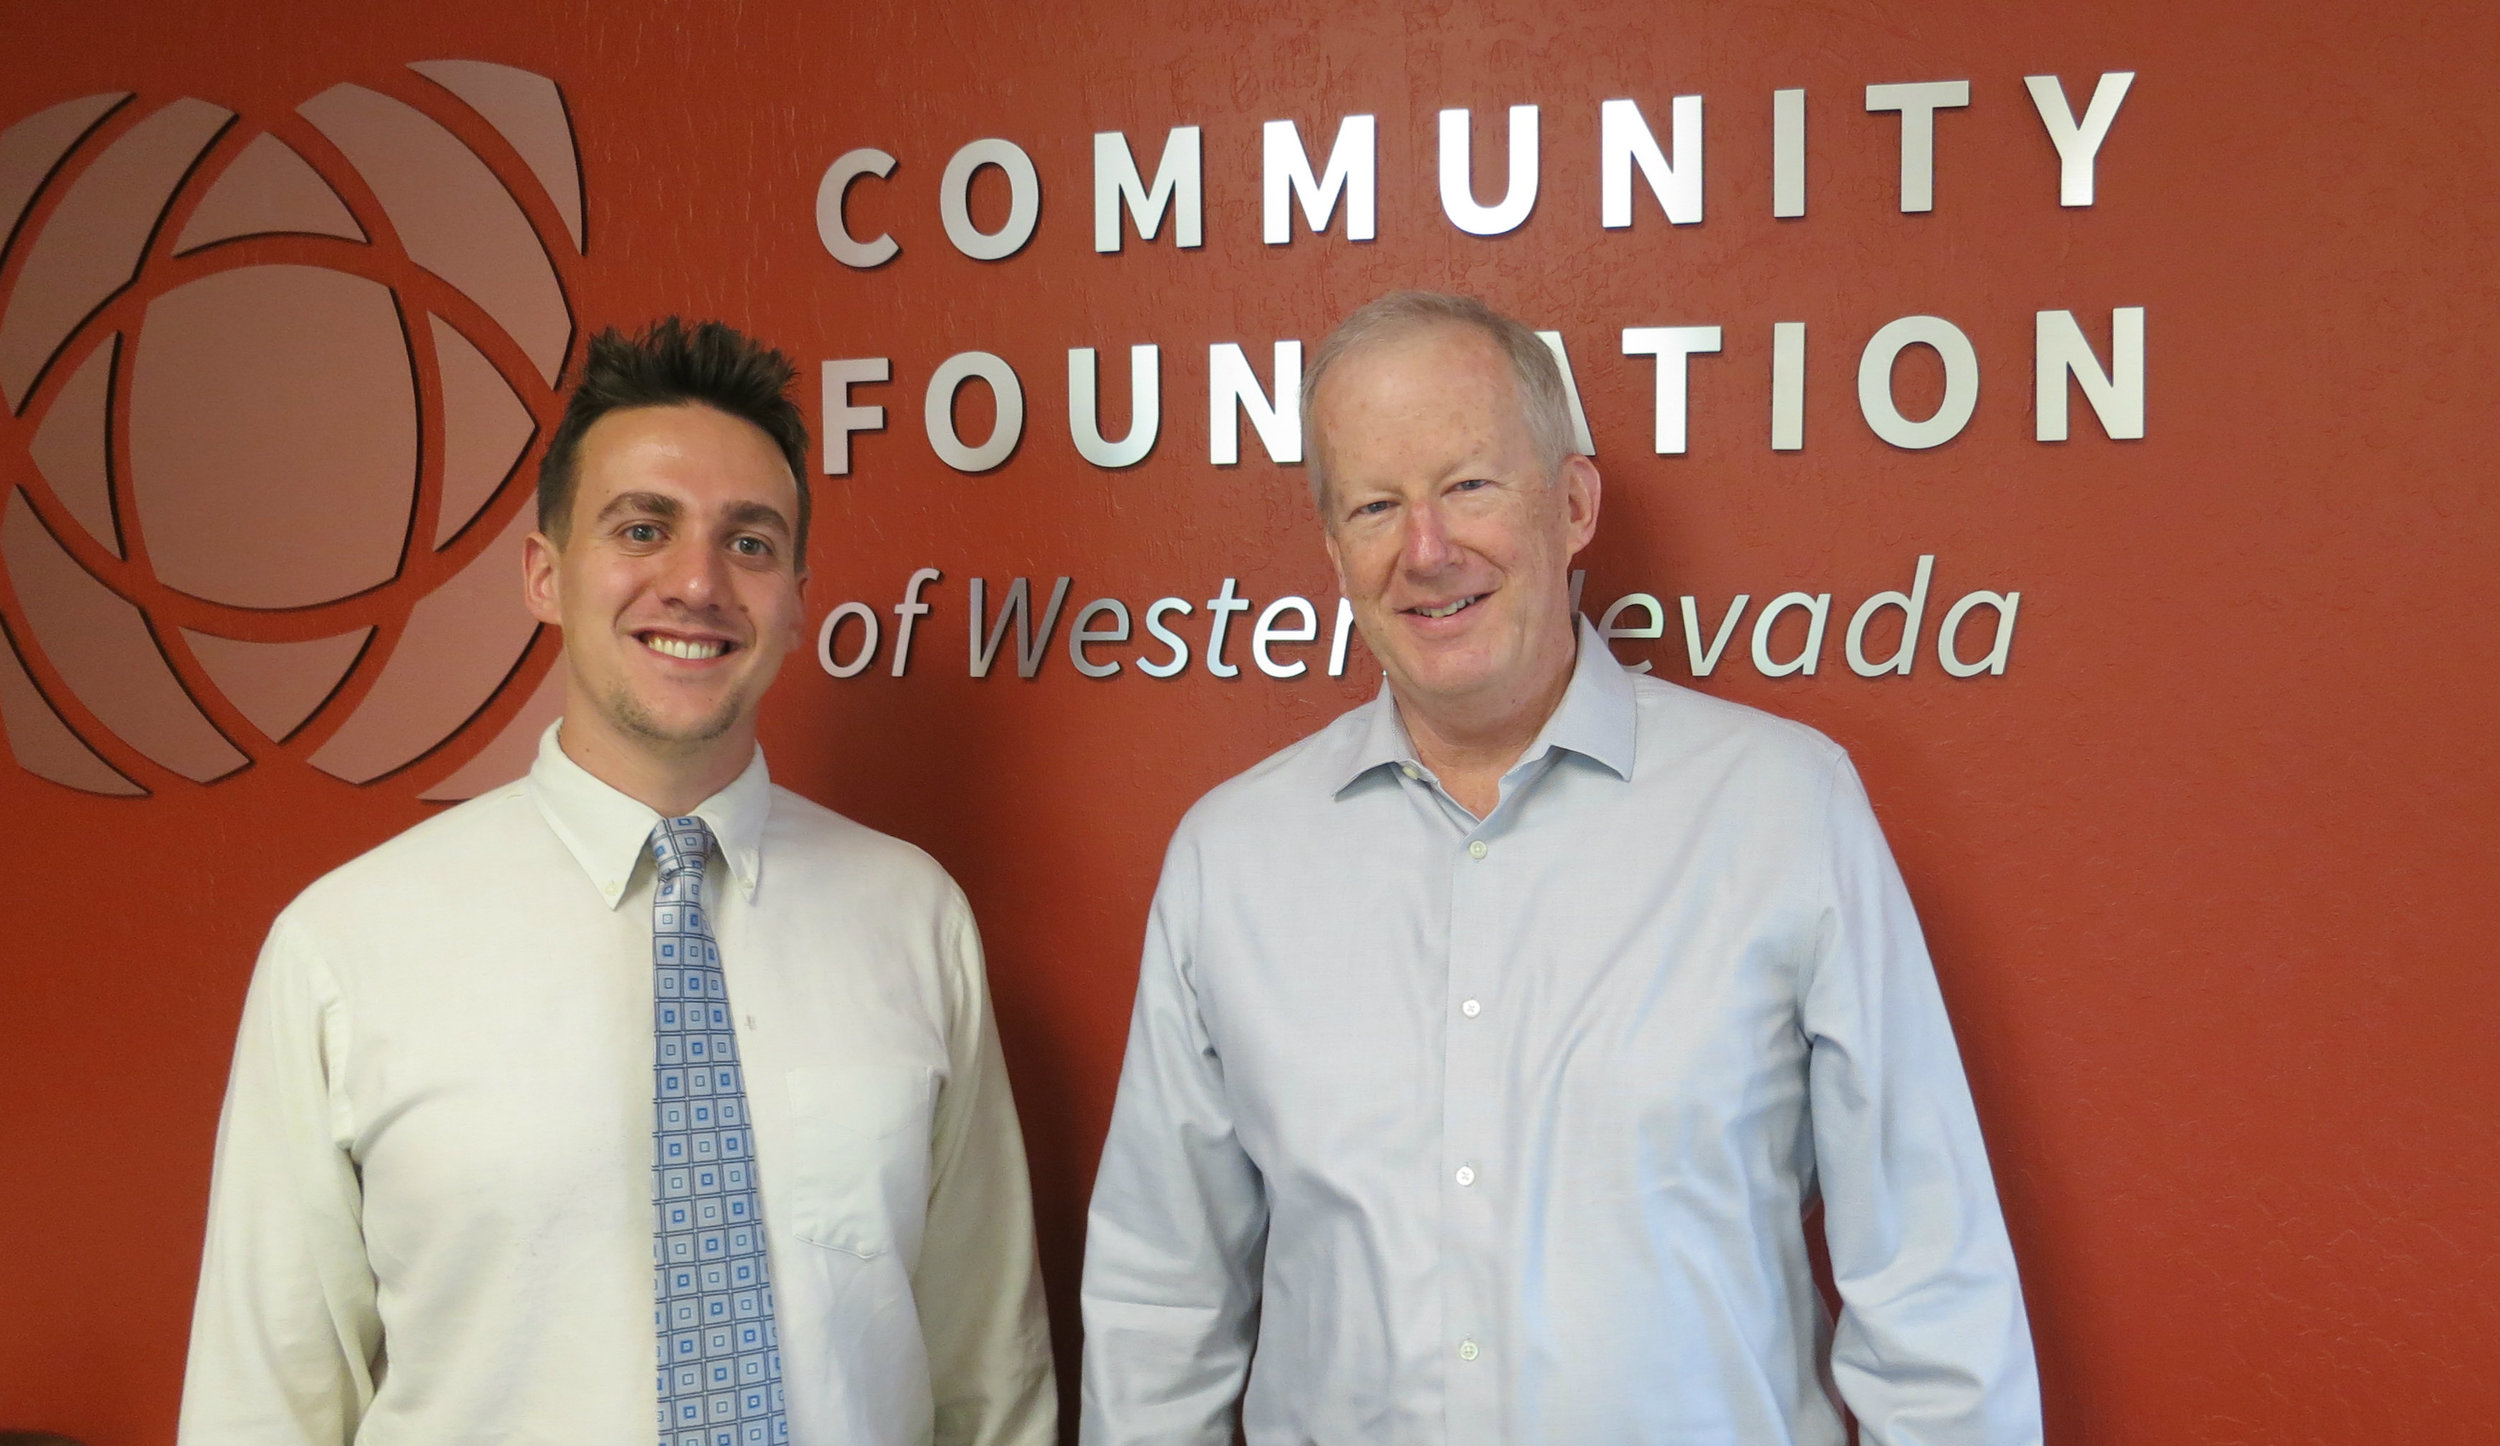 """As a final City Council vote neared to approve their Community Housing Land Trust dormitory facility, Nick Tscheekar (left), the Director of Community Leadership said : """"At the Community Foundation, we connect people who care with causes that matter and housing is a cause that matters.""""Jim Pfrommer (right), a tax and accounting consultant and the Foundation's current board chair said: """"I think with many things, even in business as well, you have to adapt and you have to figure out what works and what doesn't. And so this is another one of those things we hope that works to help provide part of the solution."""""""